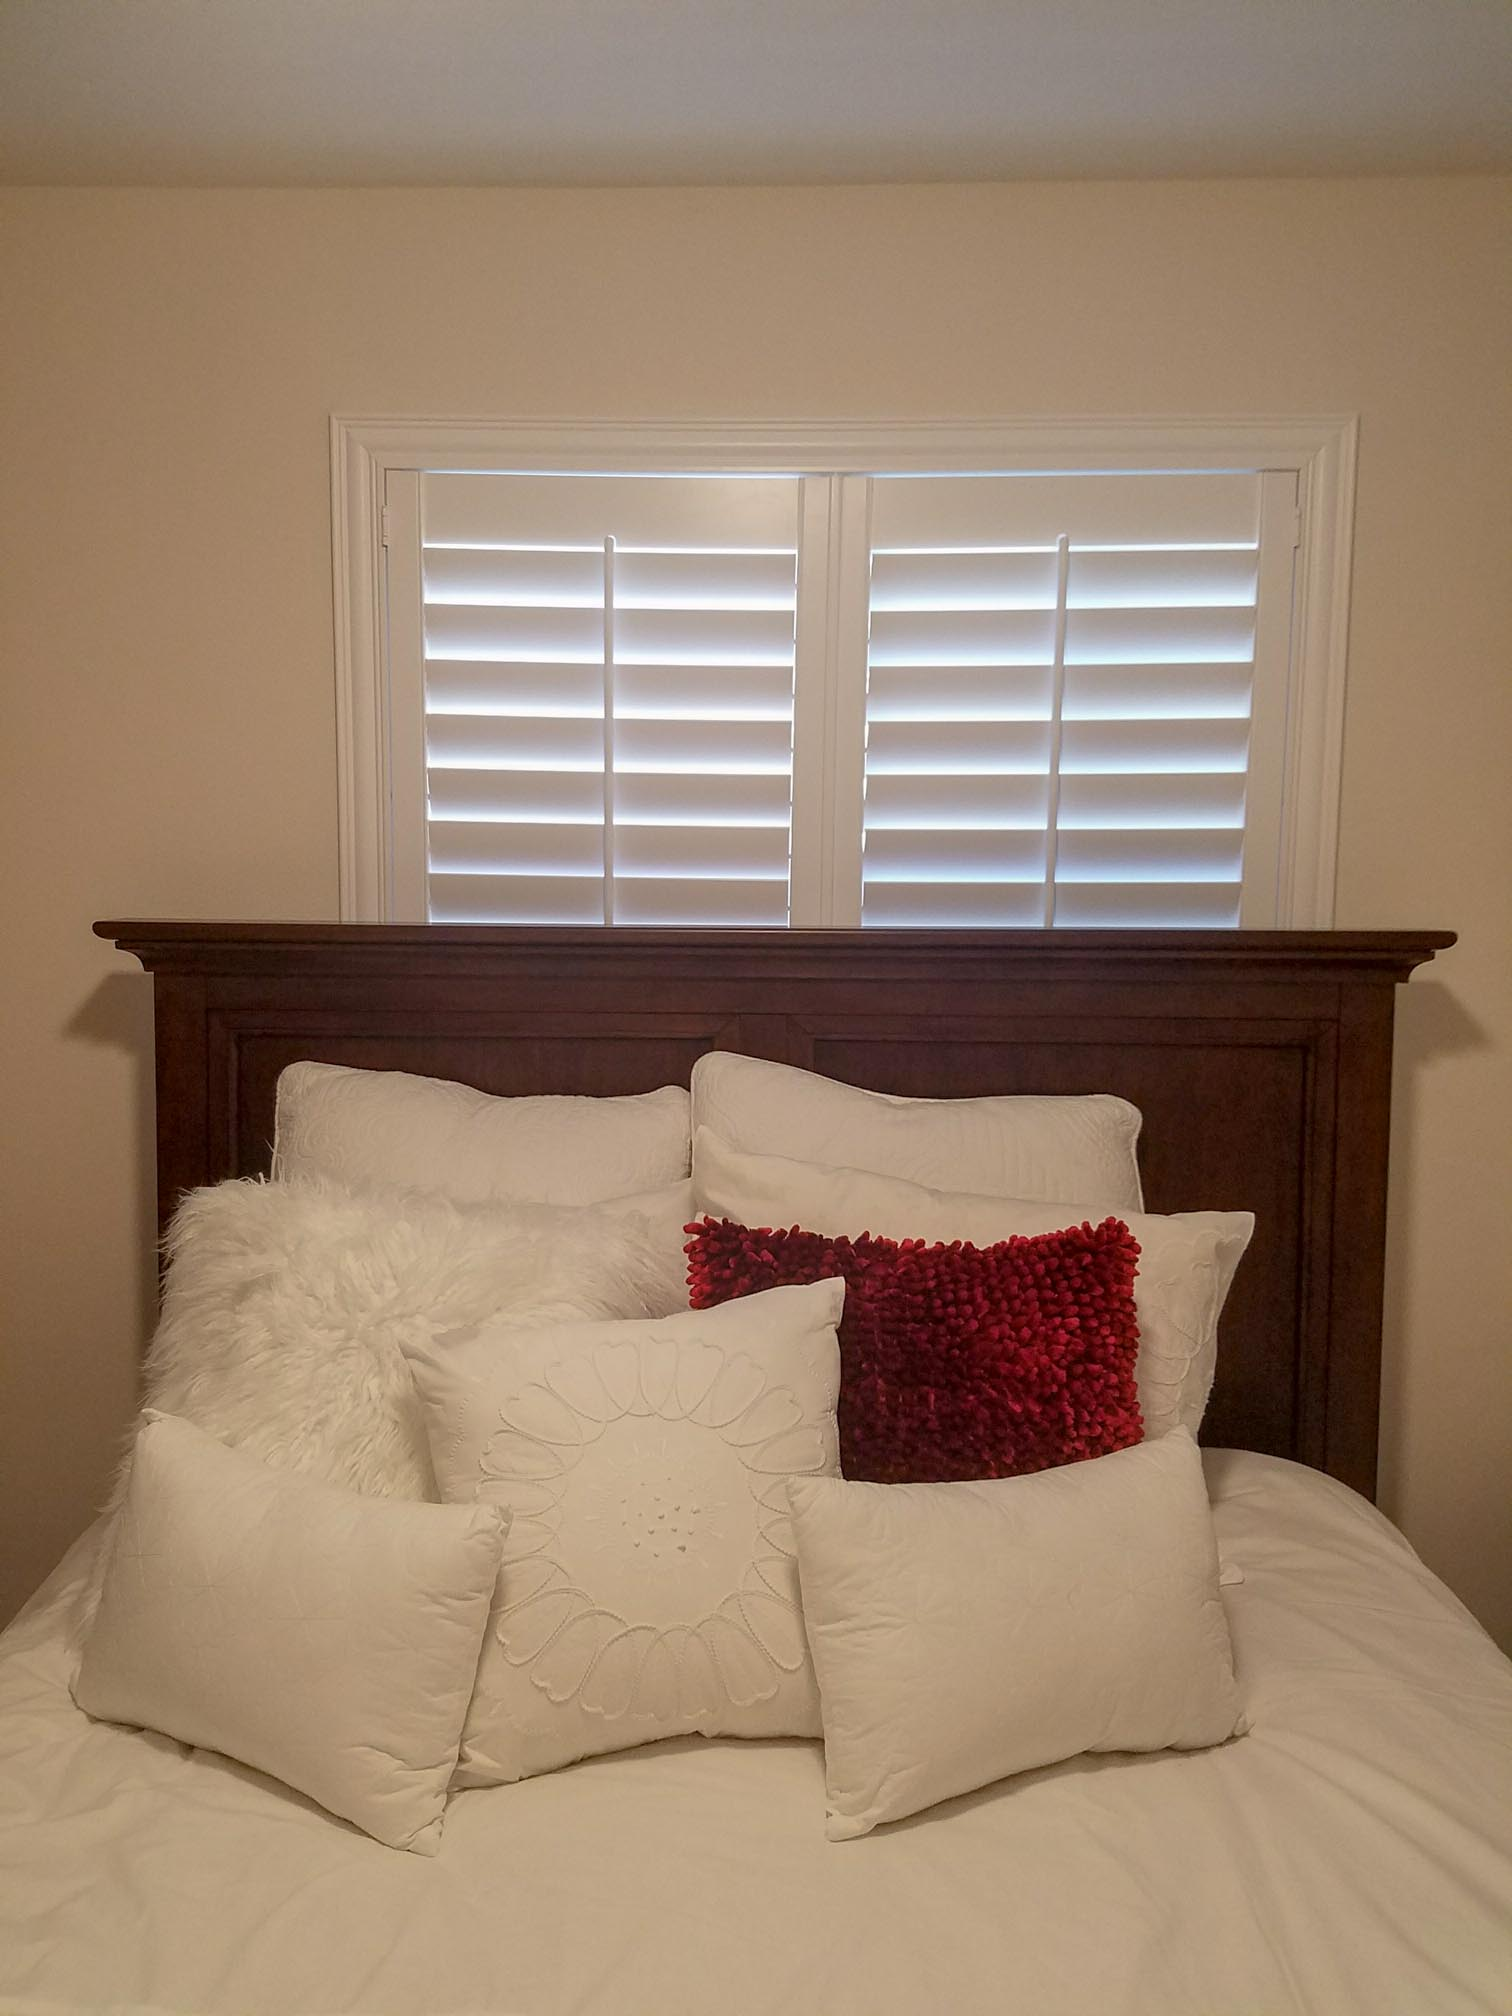 plantation shutters gallery PLANTATION SHUTTERS GALLERY 20170821 170648